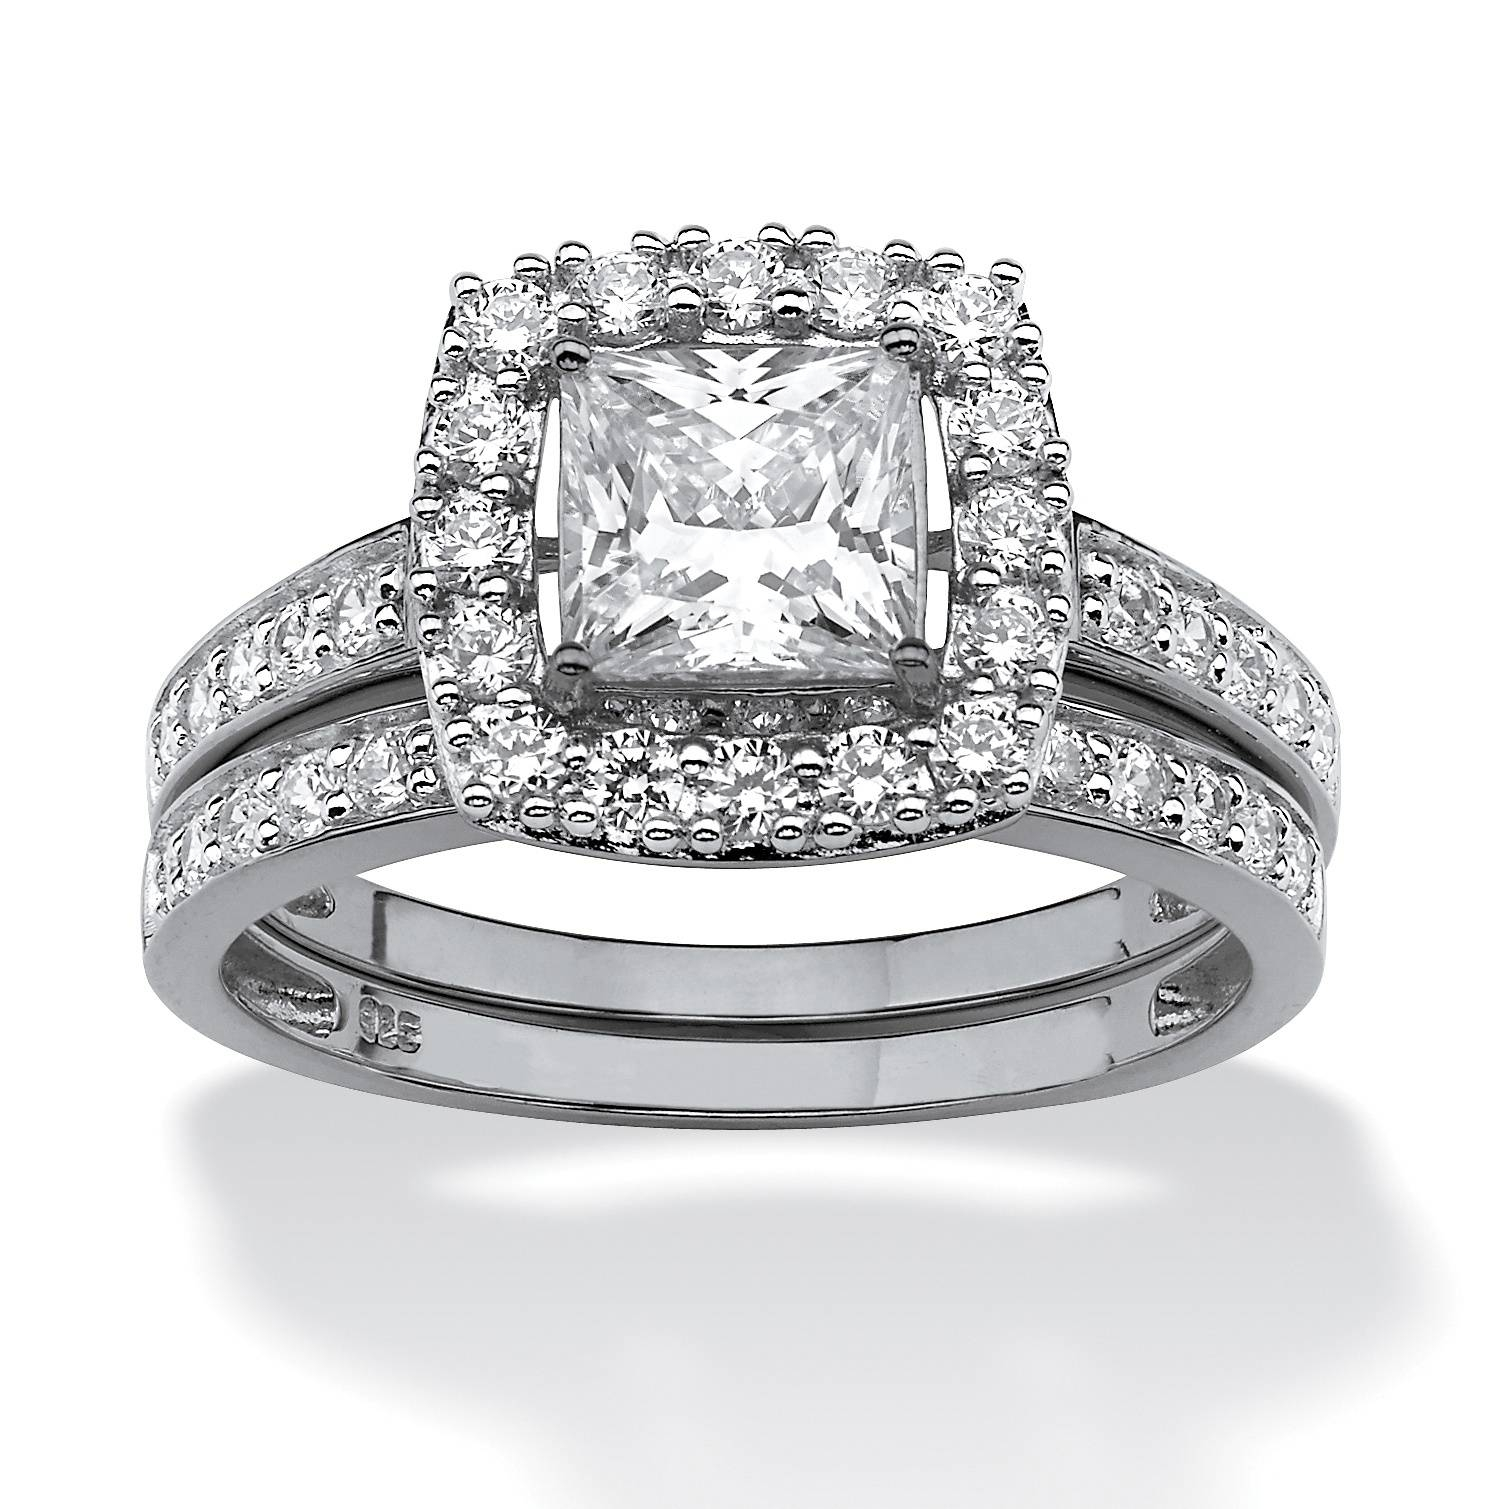 Cz 18kt White Gold Bridal Engagement Ring – Walmart In White Gold Zirconia Wedding Rings (View 8 of 15)